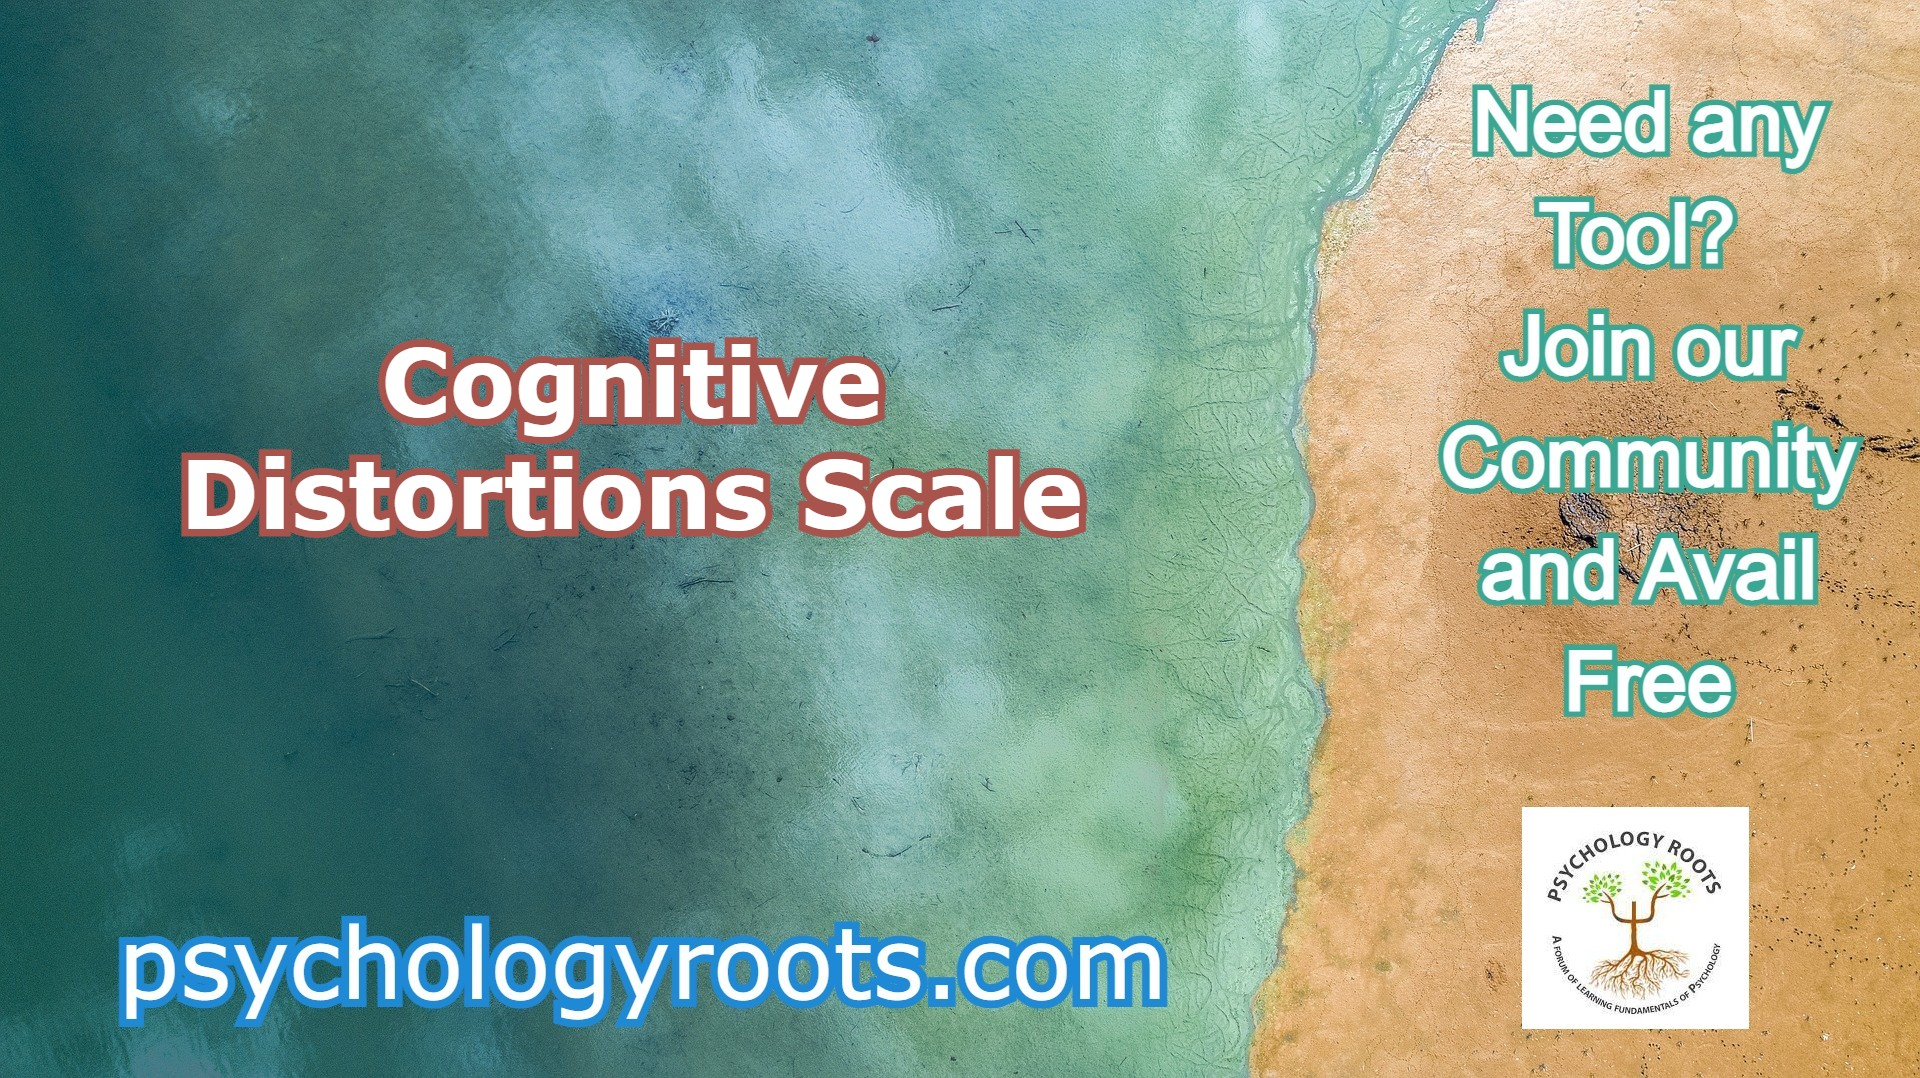 Cognitive Distortions Scale